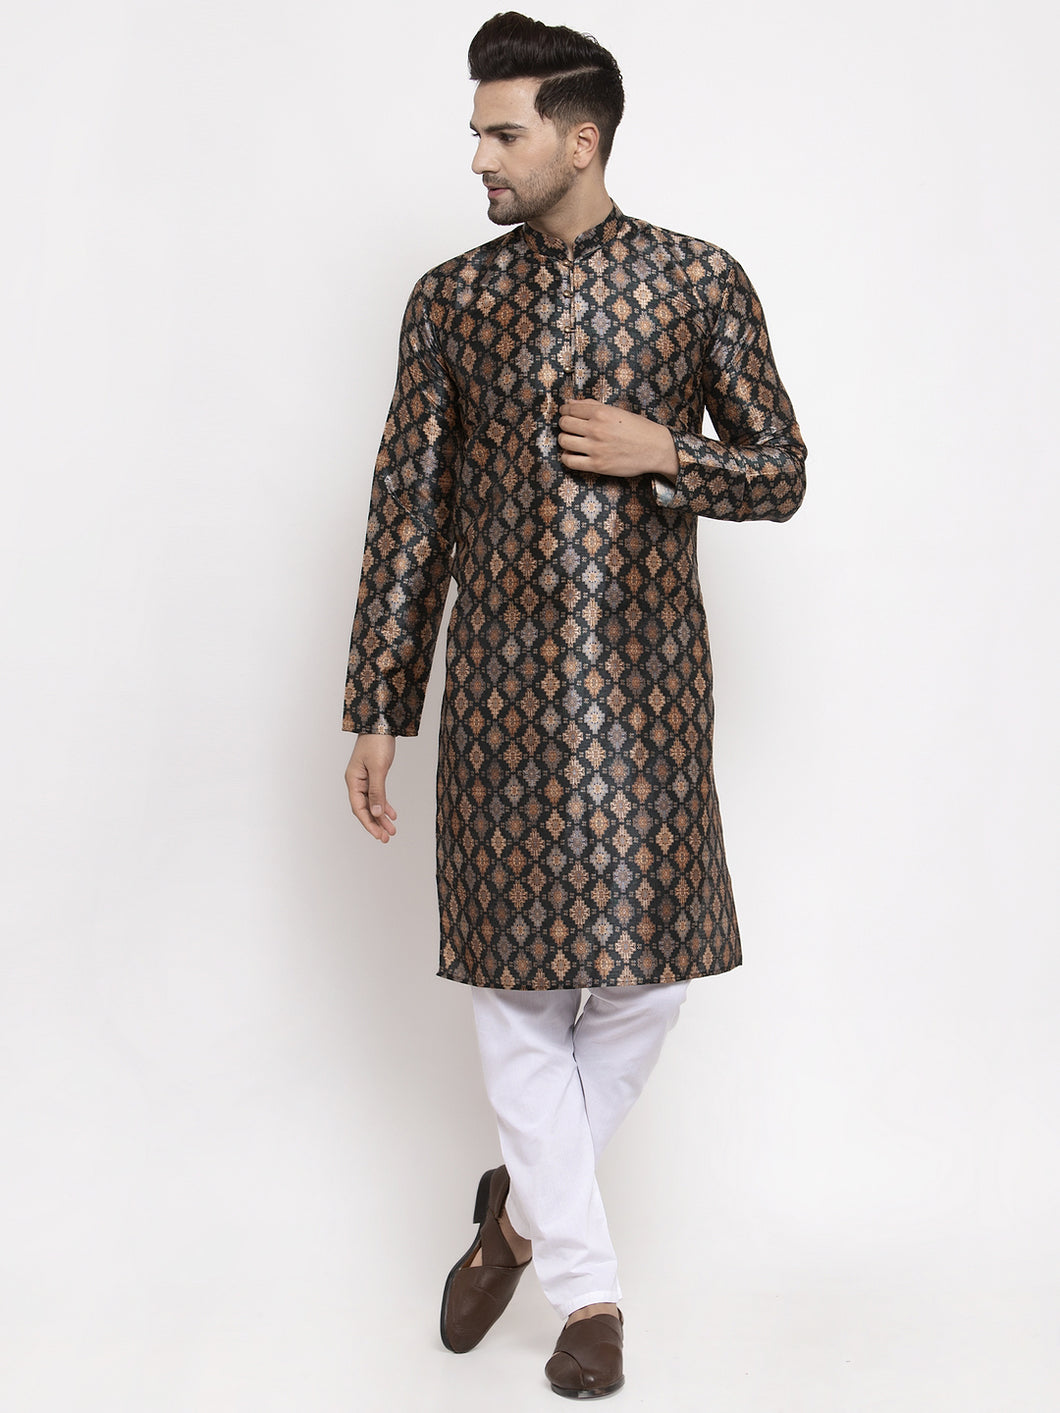 Jompers Men Black Printed Kurta with Pyjamas ( JOKP 624 Black )